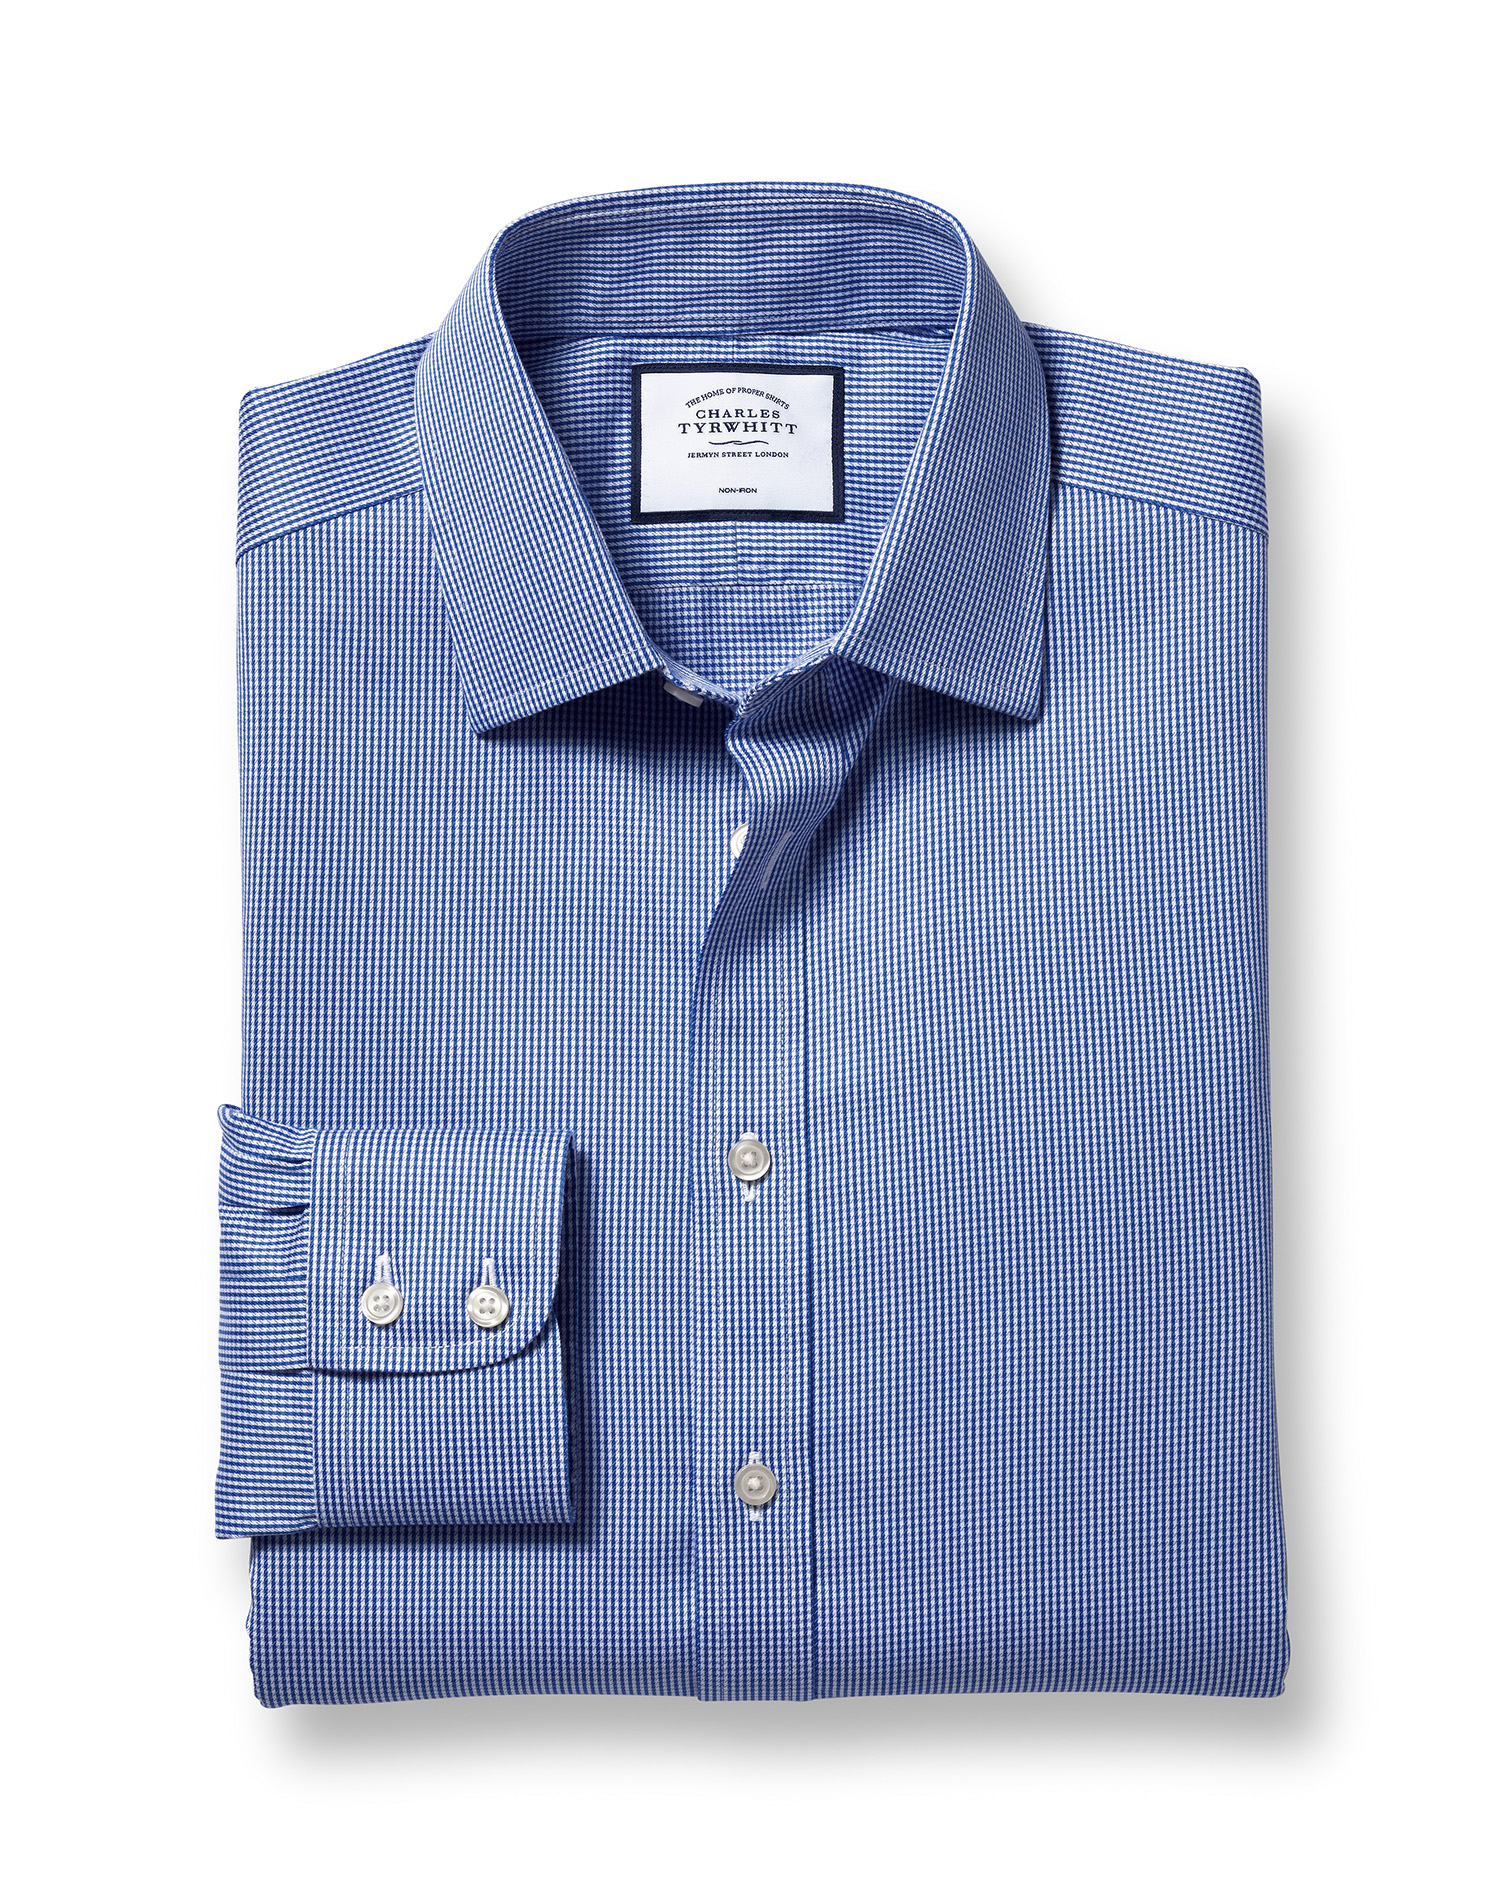 Classic Fit Non-Iron Puppytooth Royal Blue Cotton Formal Shirt Single Cuff Size 16.5/38 by Charles T